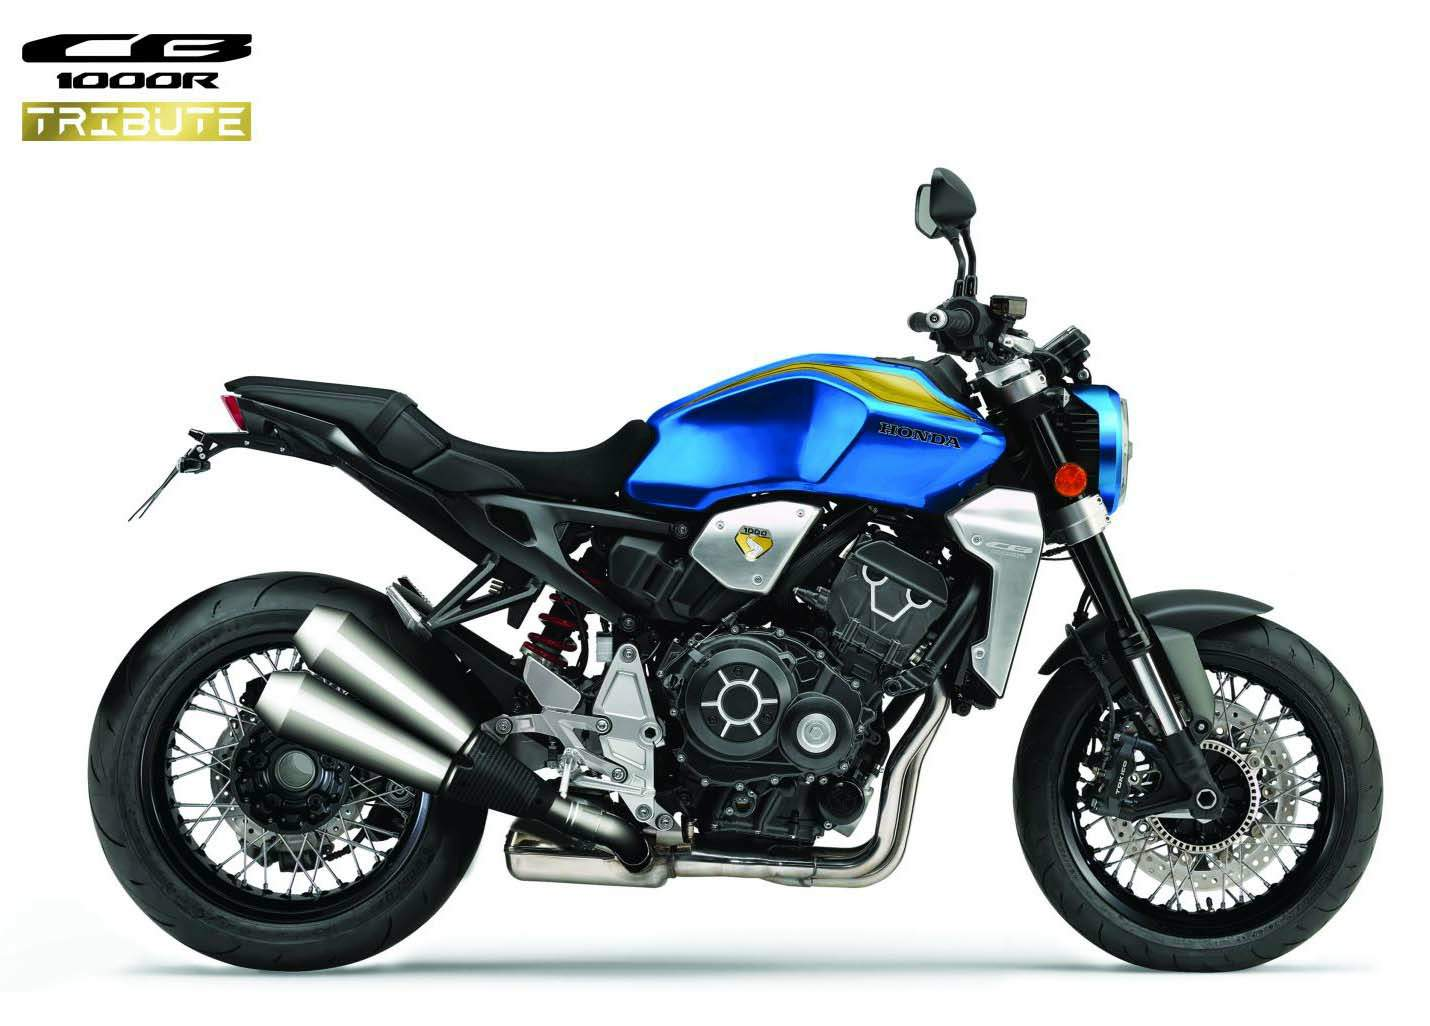 There's a special Honda CB1000 R coming soon!